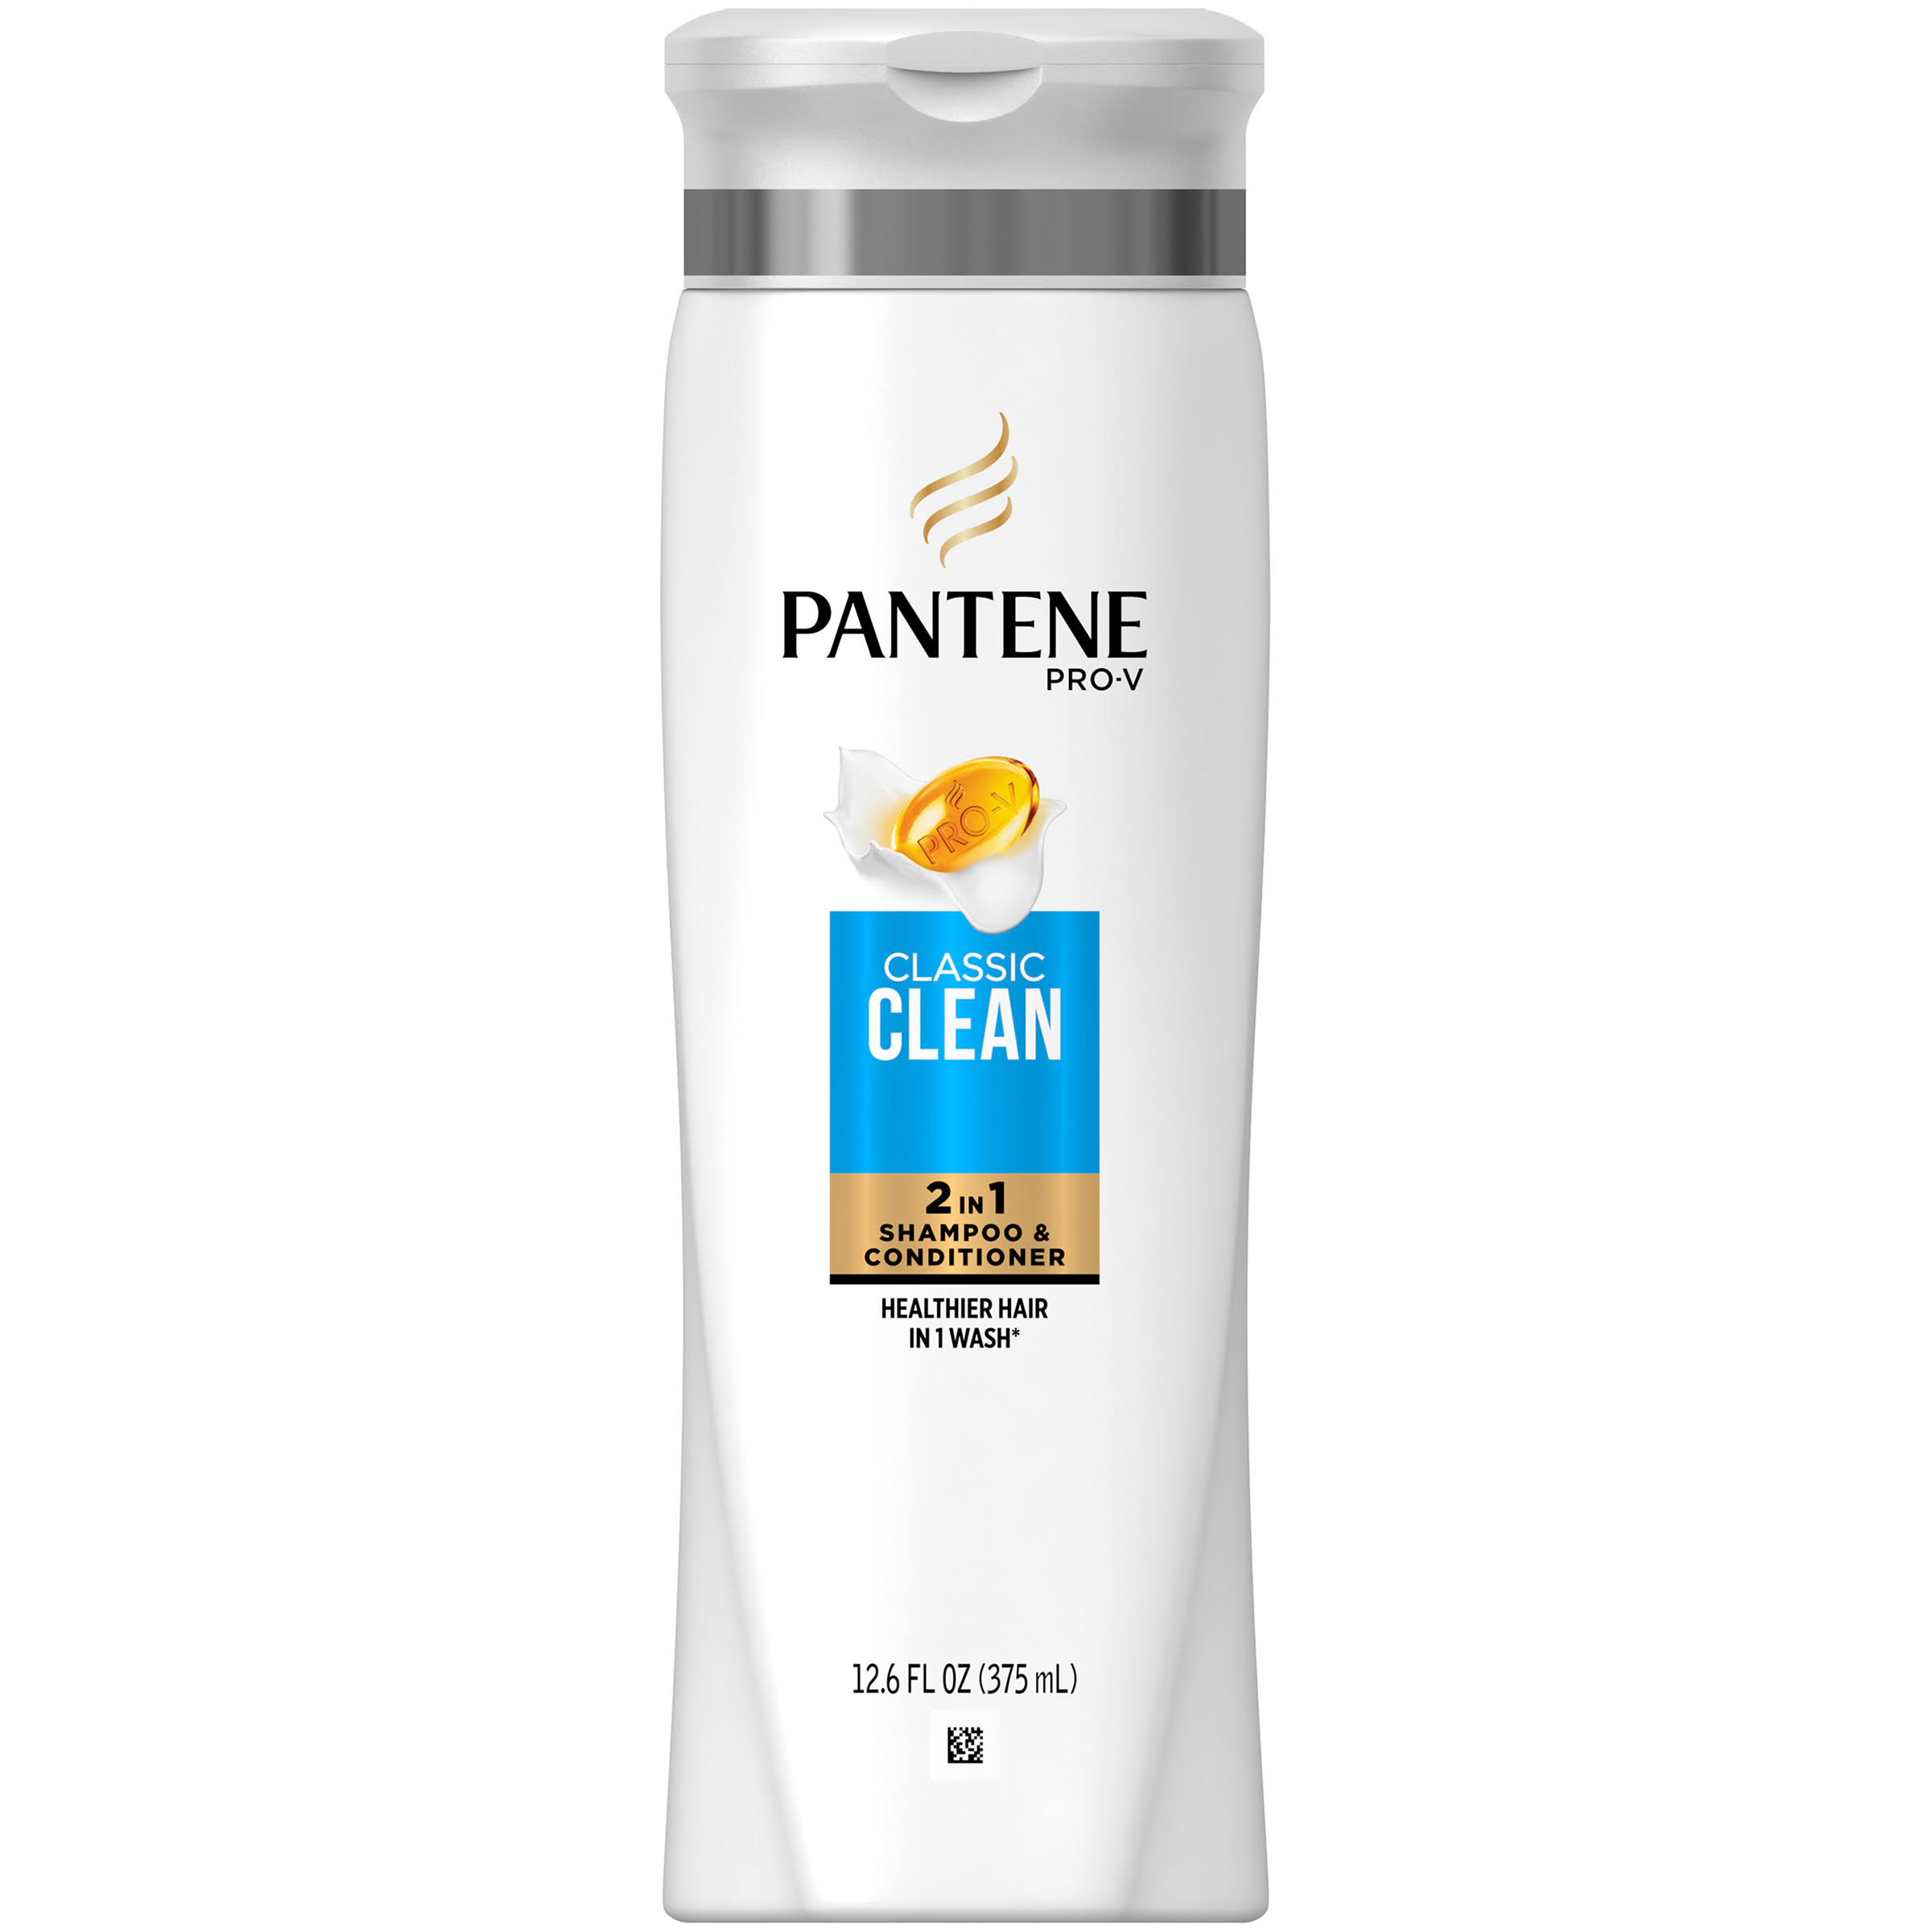 Pantene Pro-V Dreamcare Classic Clean 2 in 1 Shampoo and Conditioner - 12.6oz